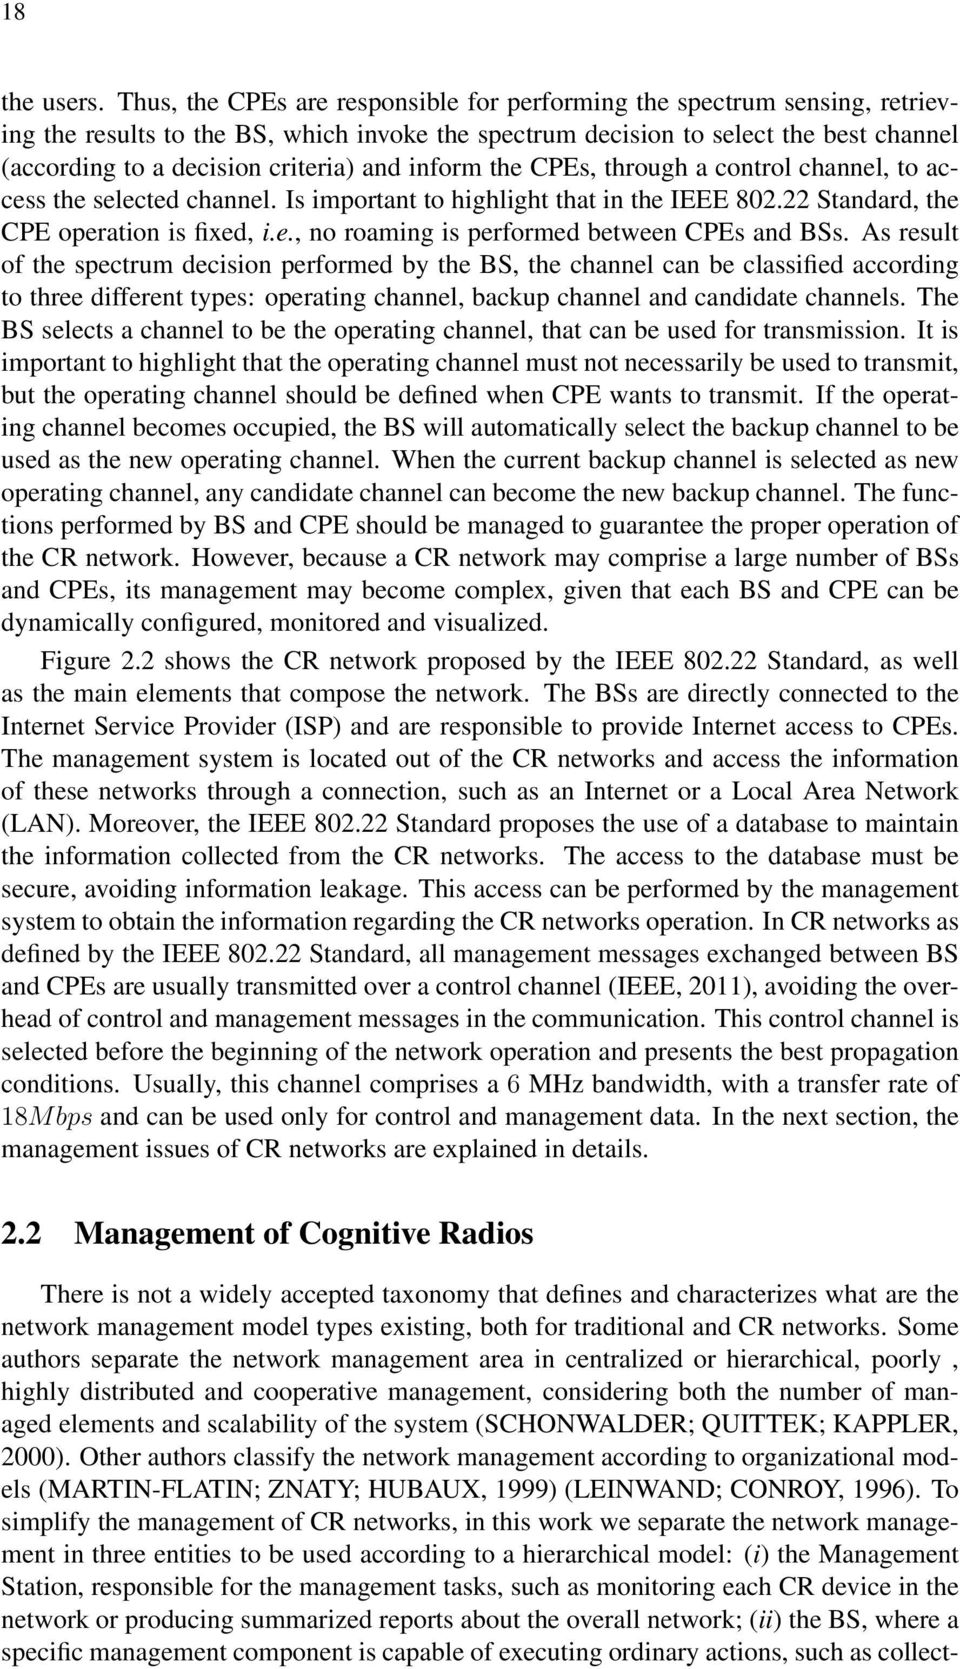 and inform the CPEs, through a control channel, to access the selected channel. Is important to highlight that in the IEEE 802.22 Standard, the CPE operation is fixed, i.e., no roaming is performed between CPEs and BSs.